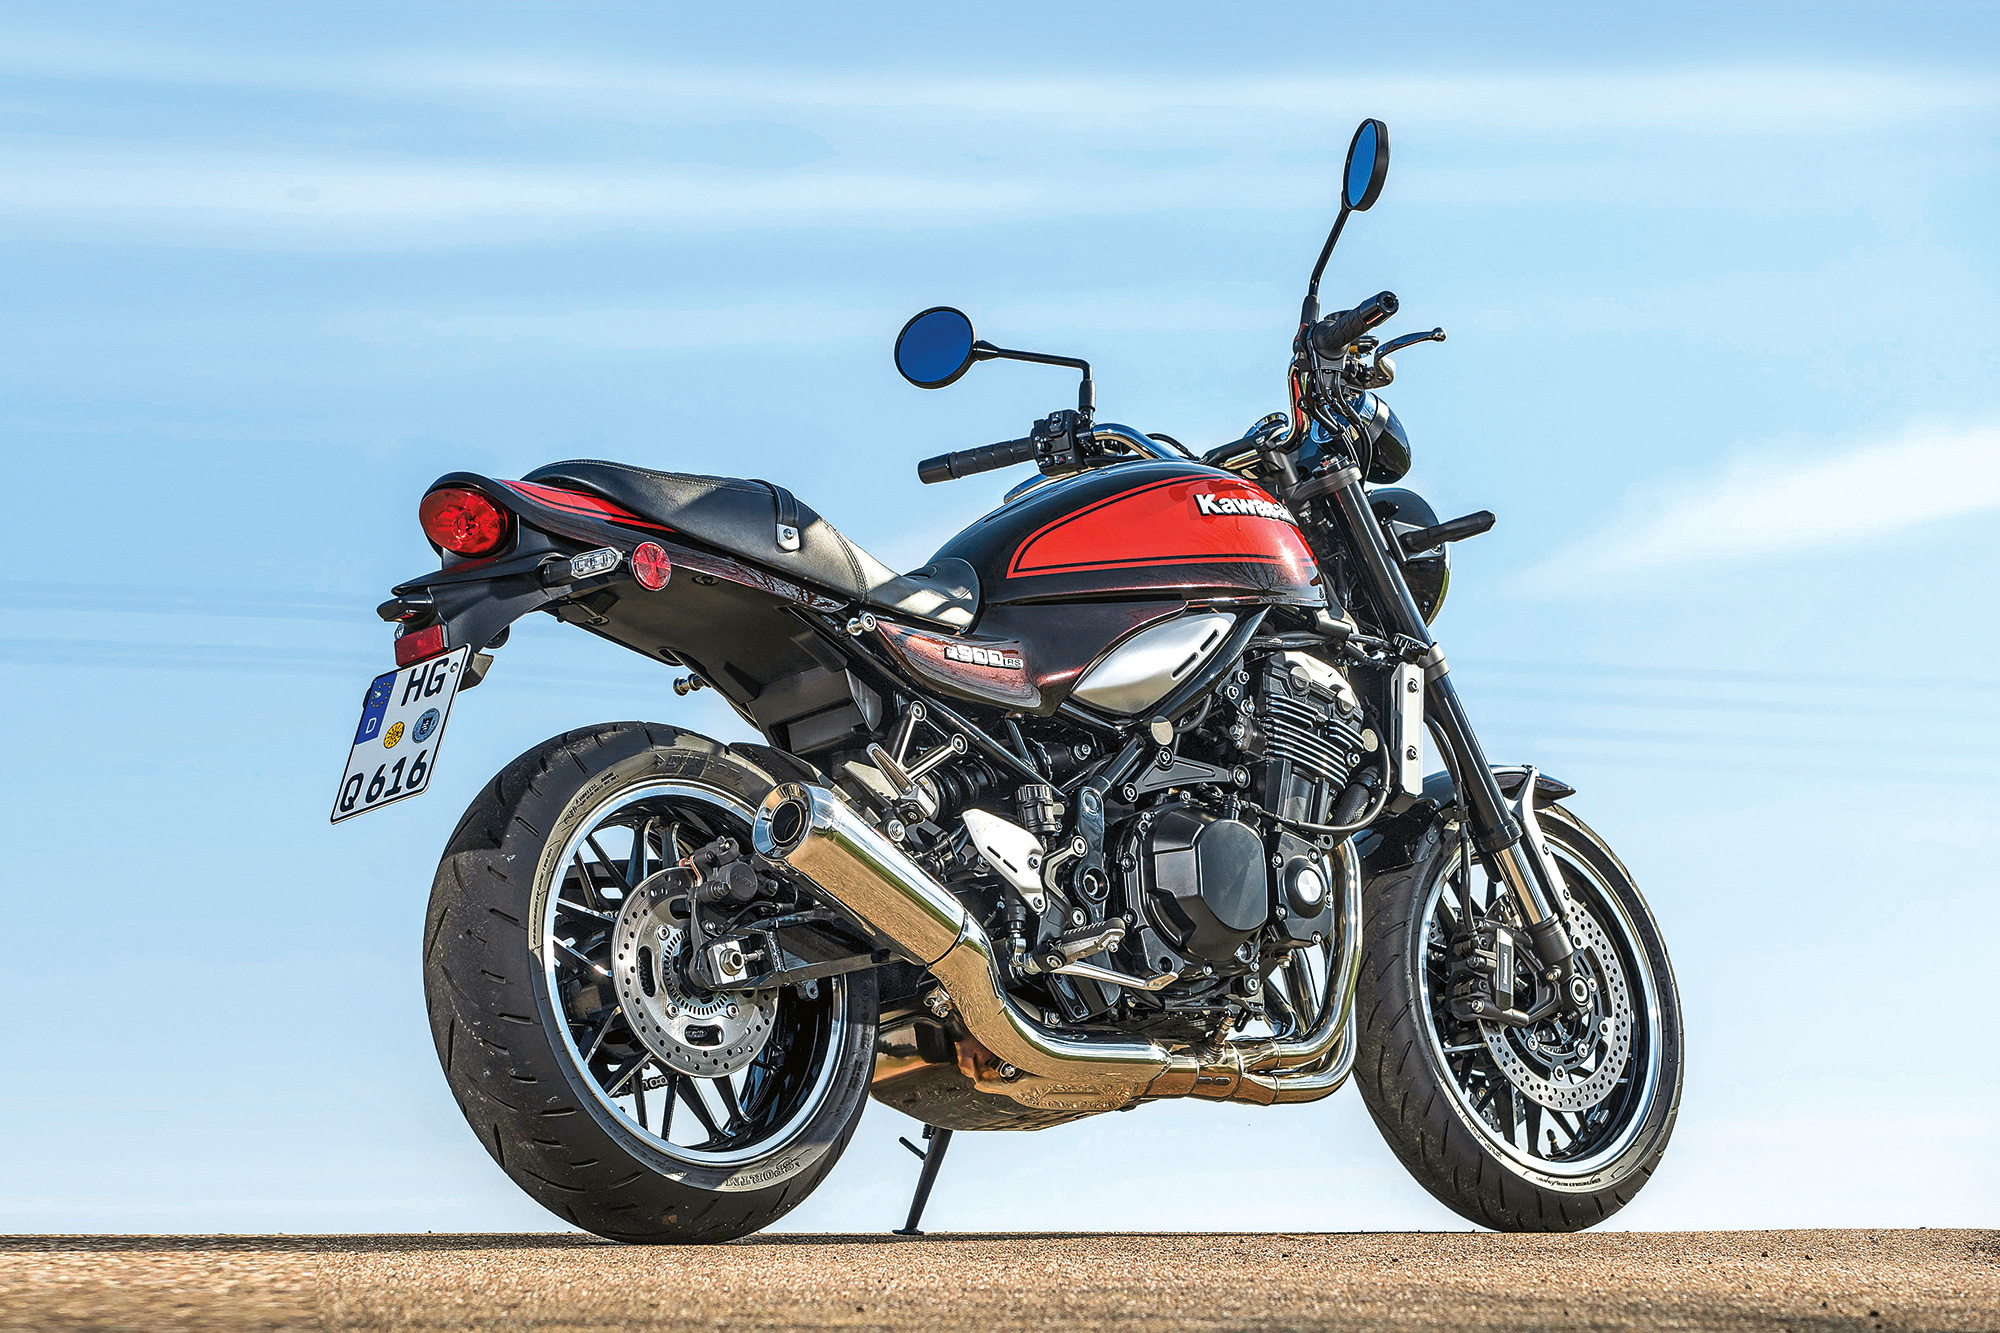 2018 Kawasaki Z900RS: Retro styled version of the naked to